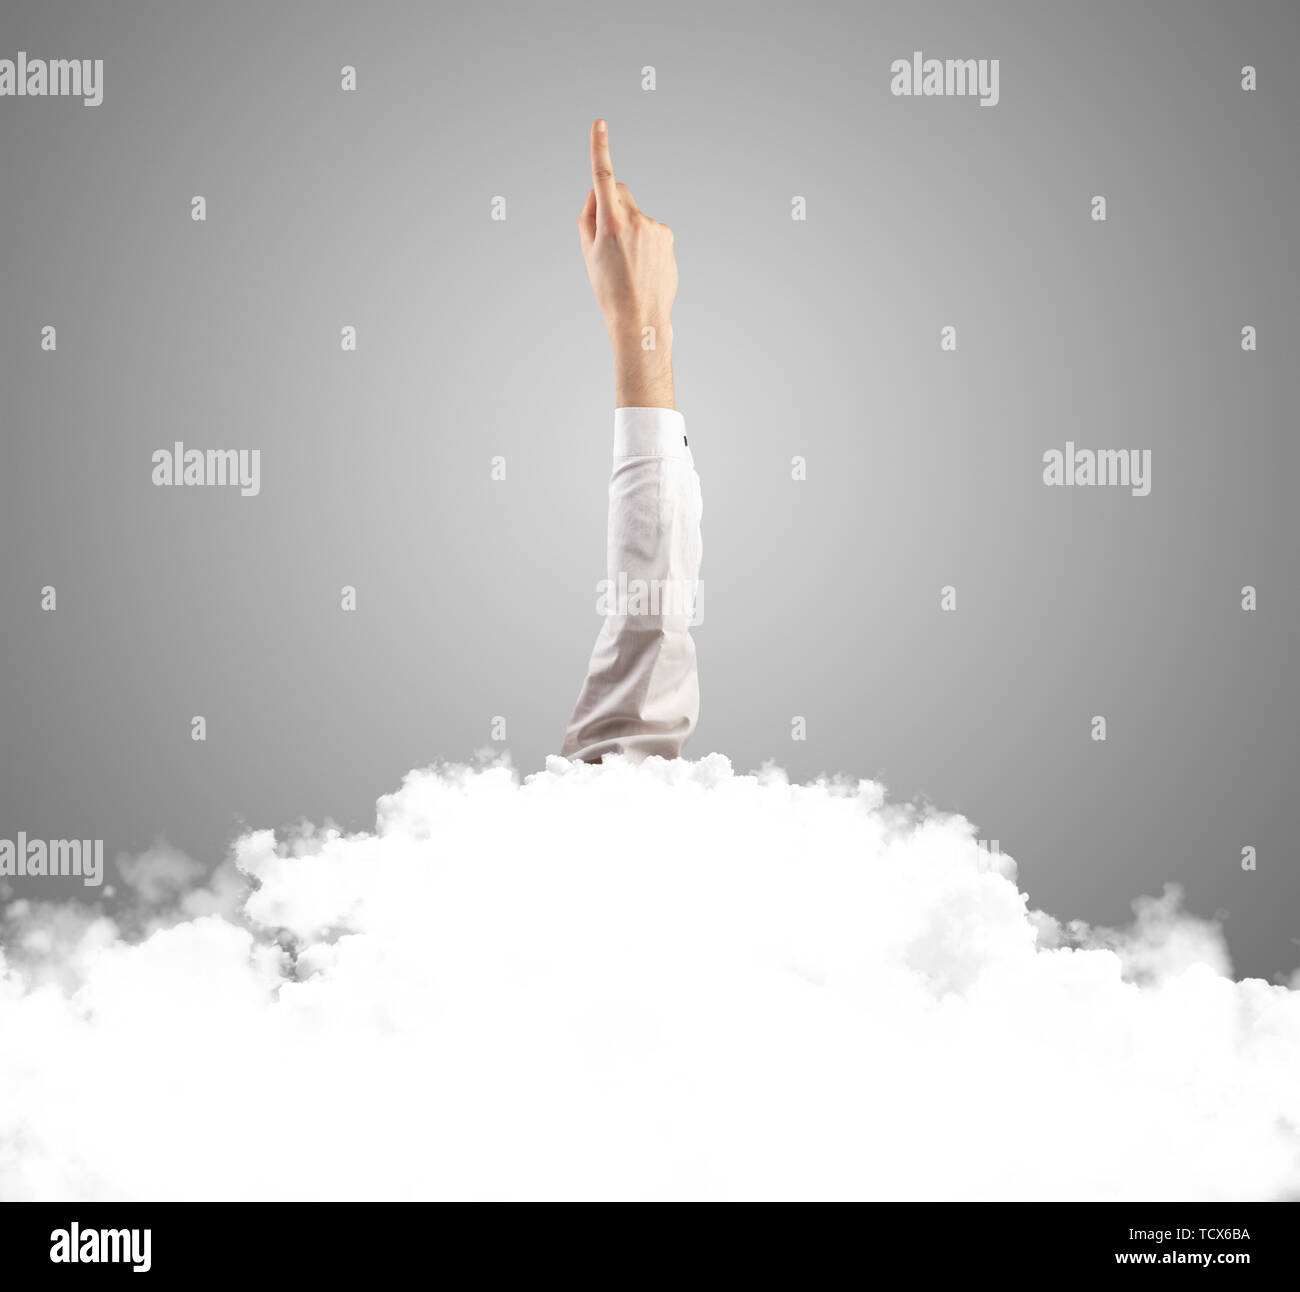 Hand breaking out from the cloud  - Stock Image